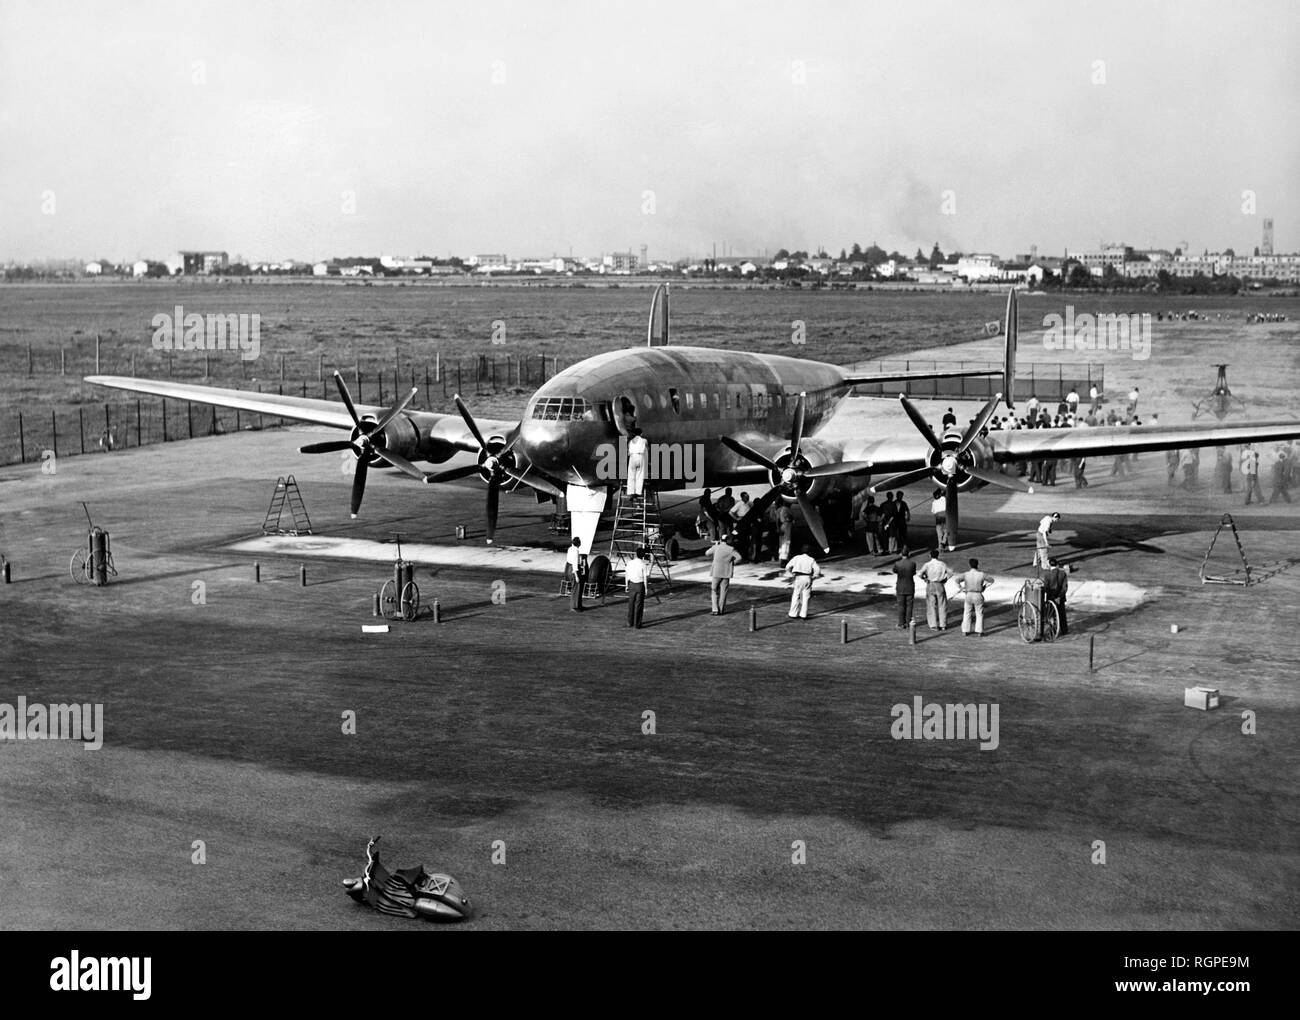 four-engined aircraft bz308, 1948 - Stock Image